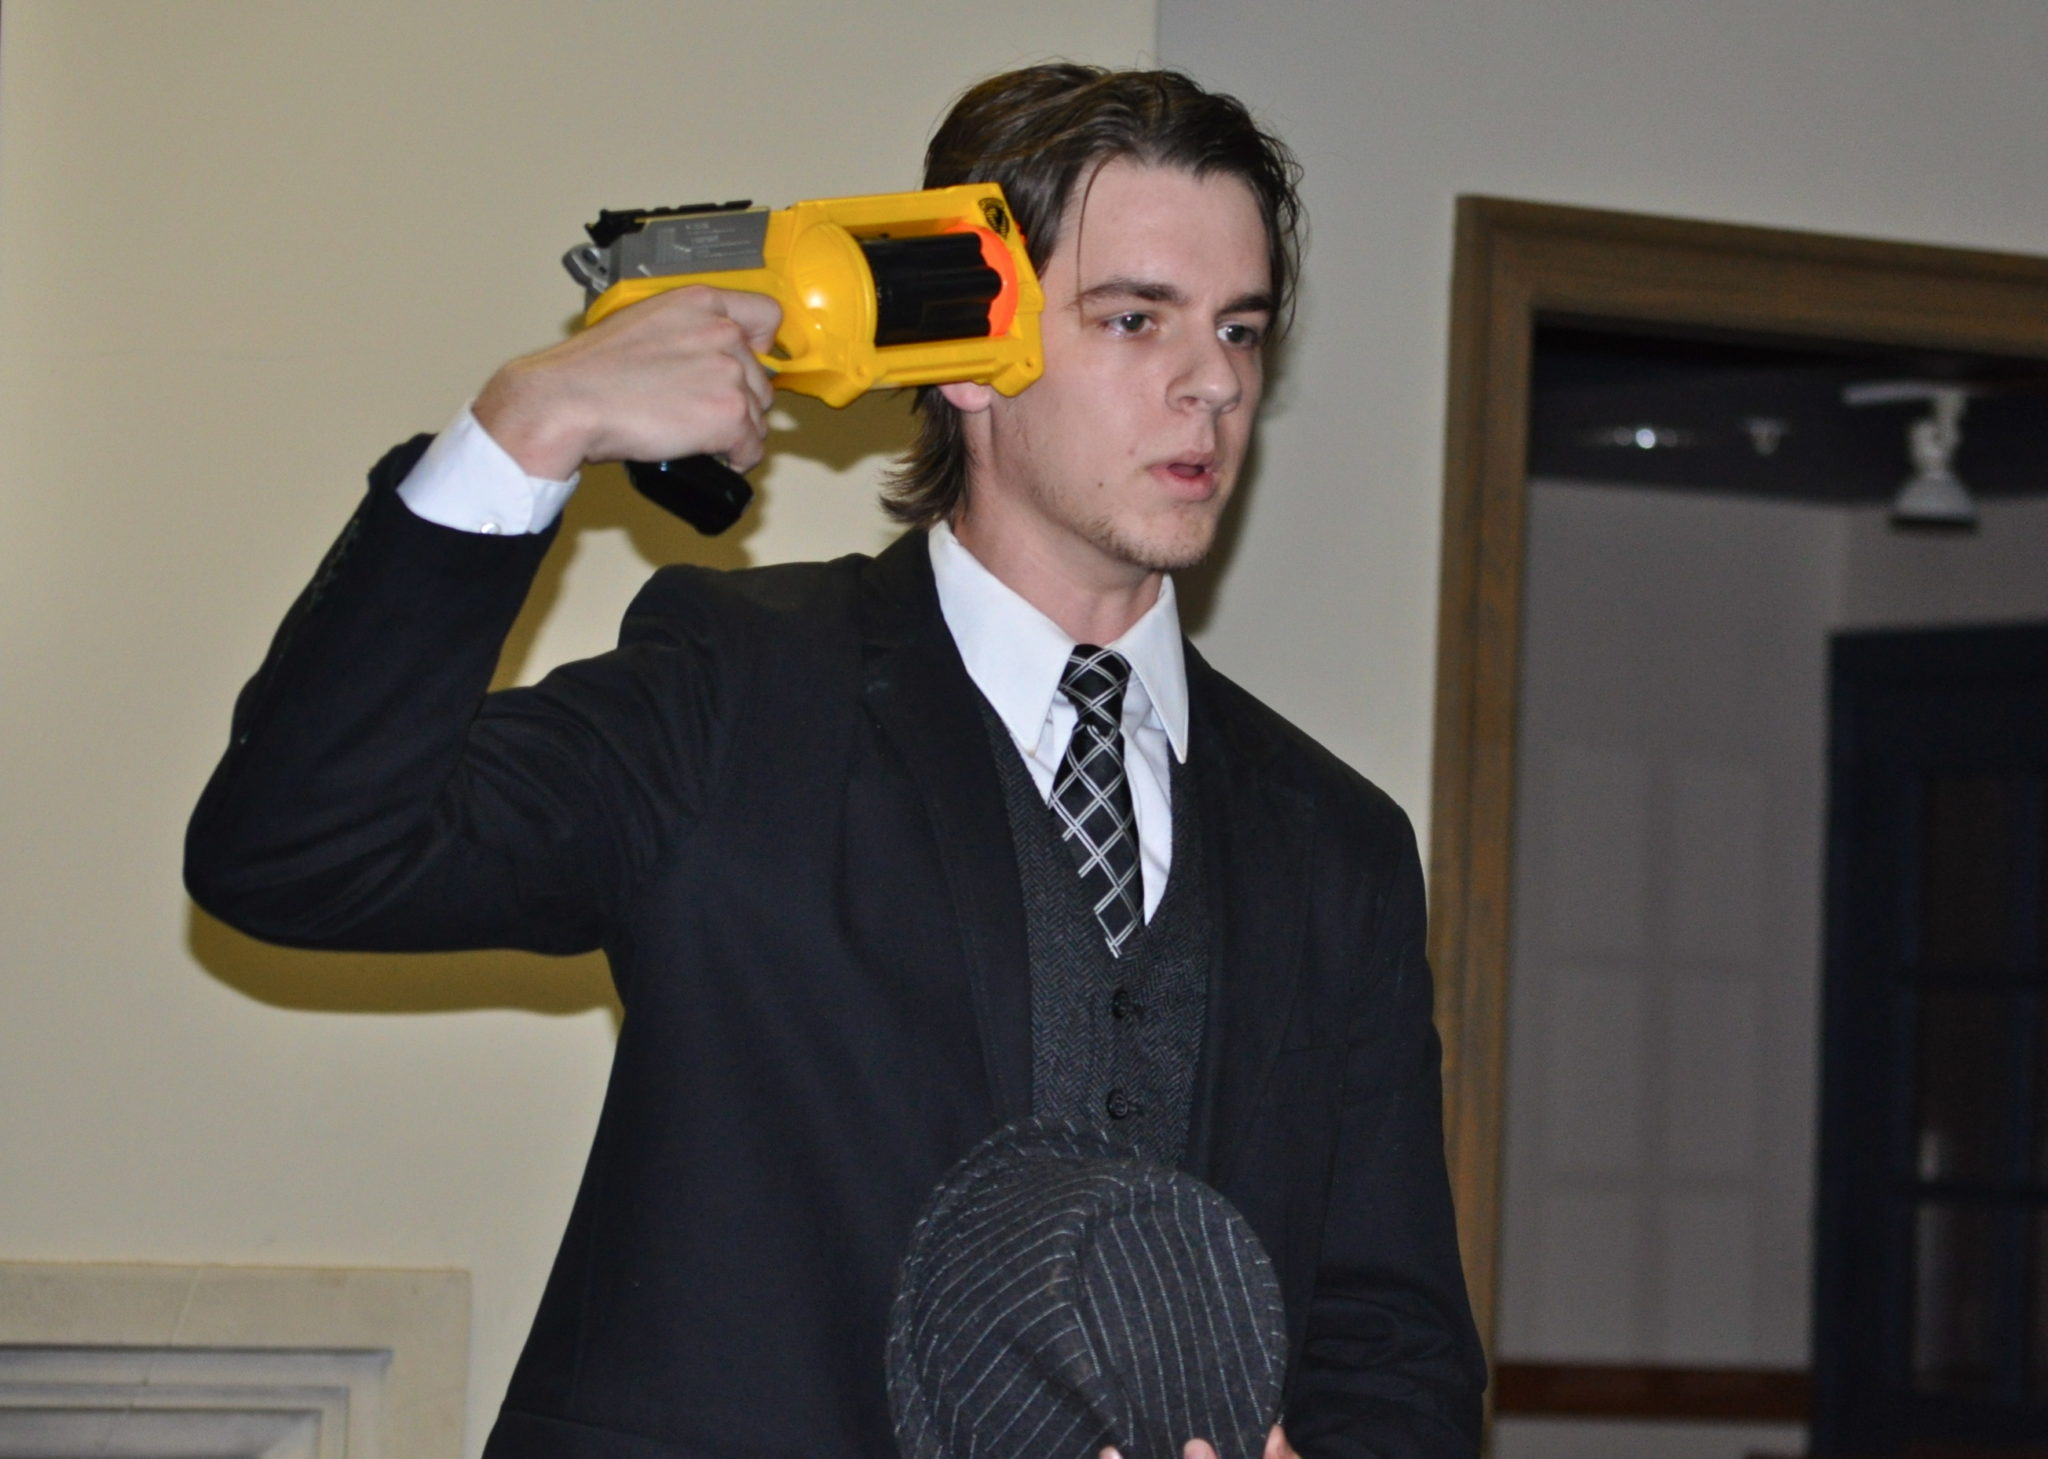 Slam poet holds nerf gun up to head during a performance.